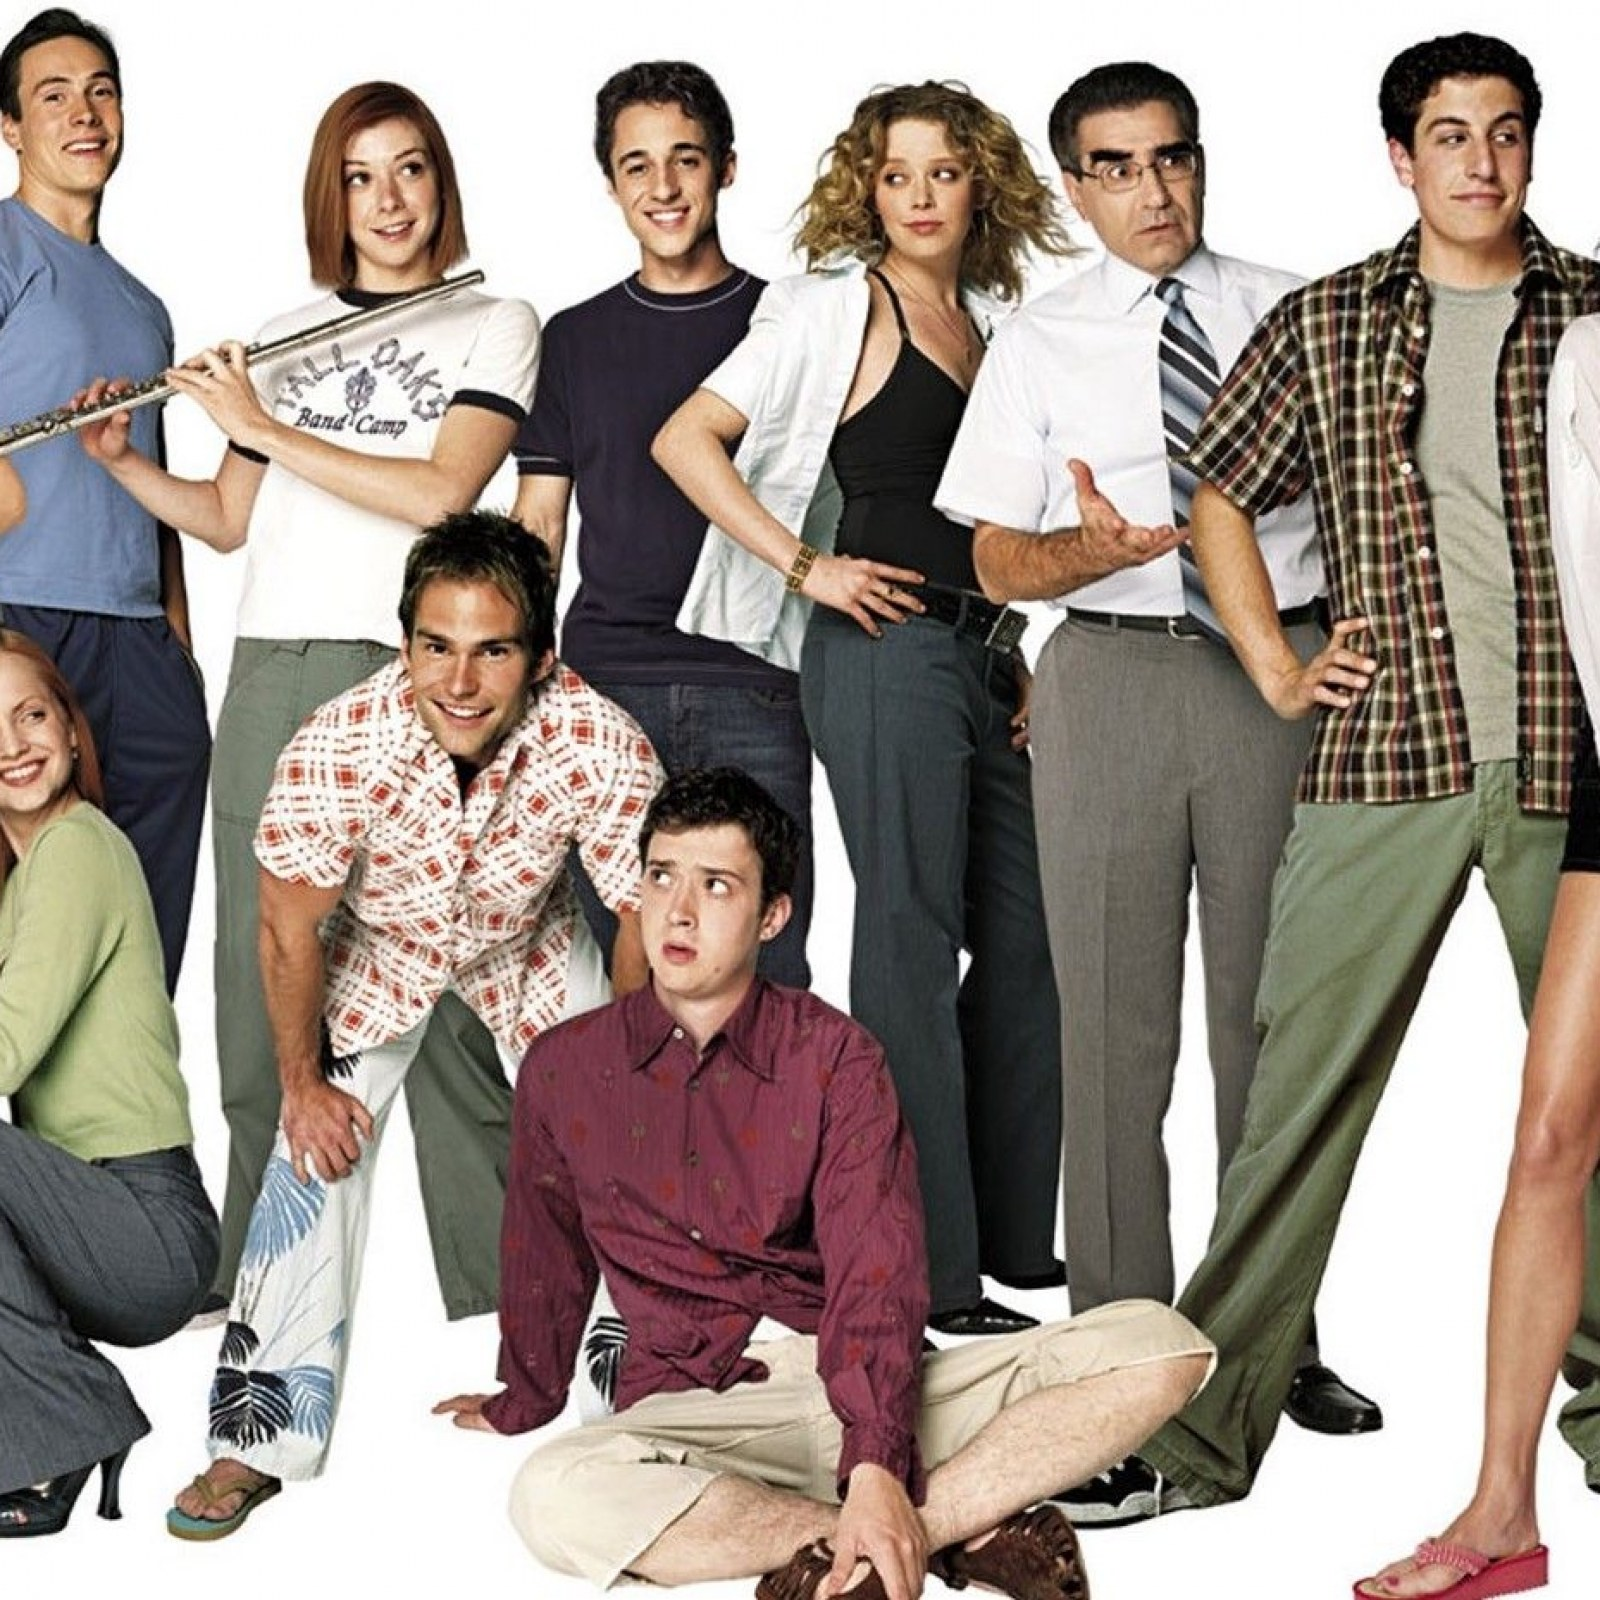 American Pie The Next Generation american pie' cast: where are they now?